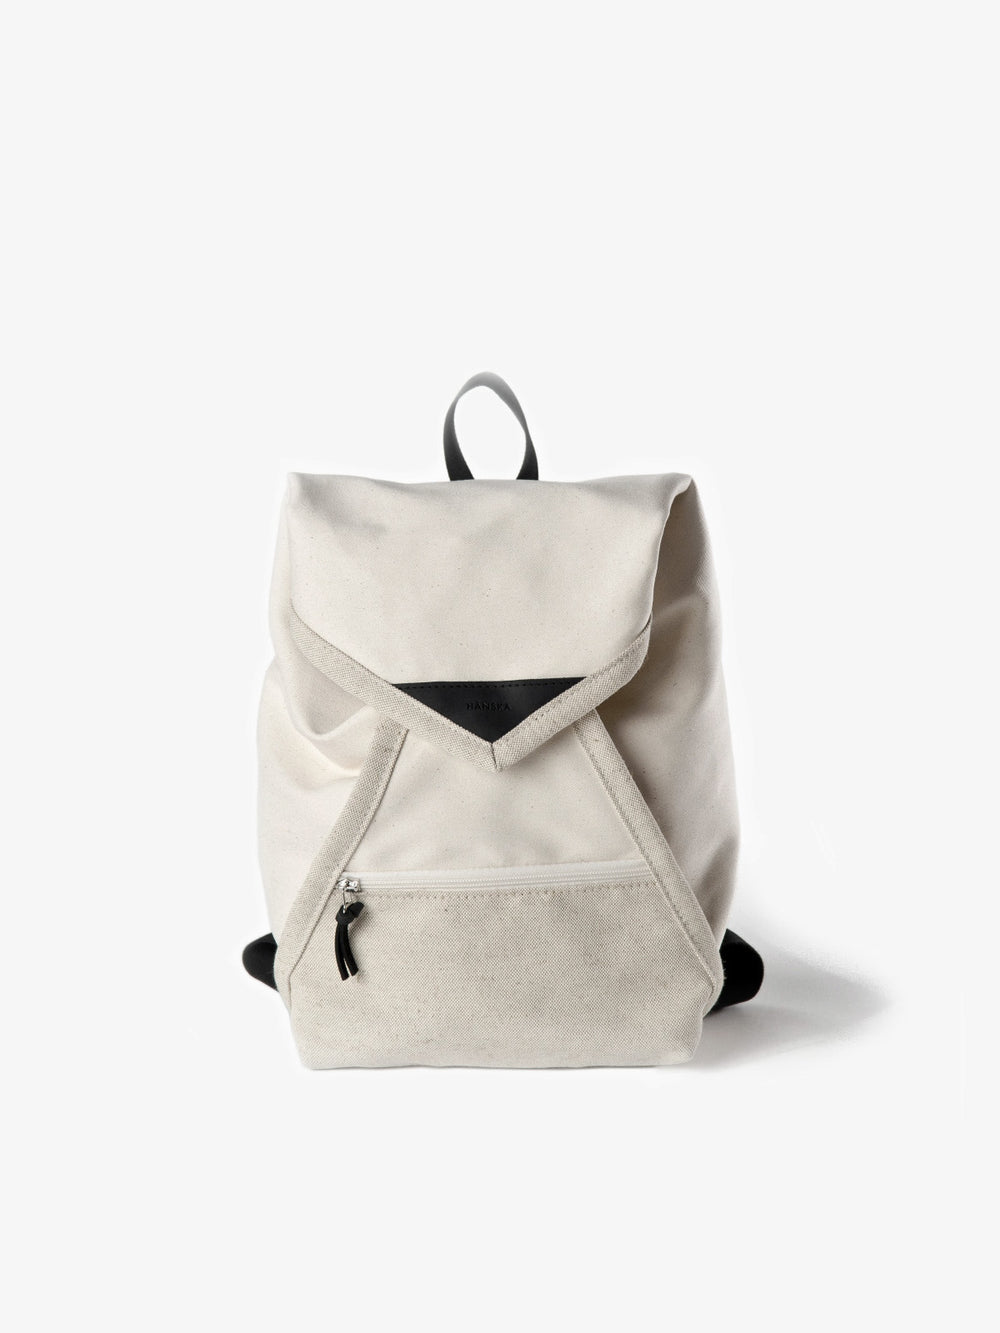 The Catamaran backpack is inspired by the design of a stationary envelope